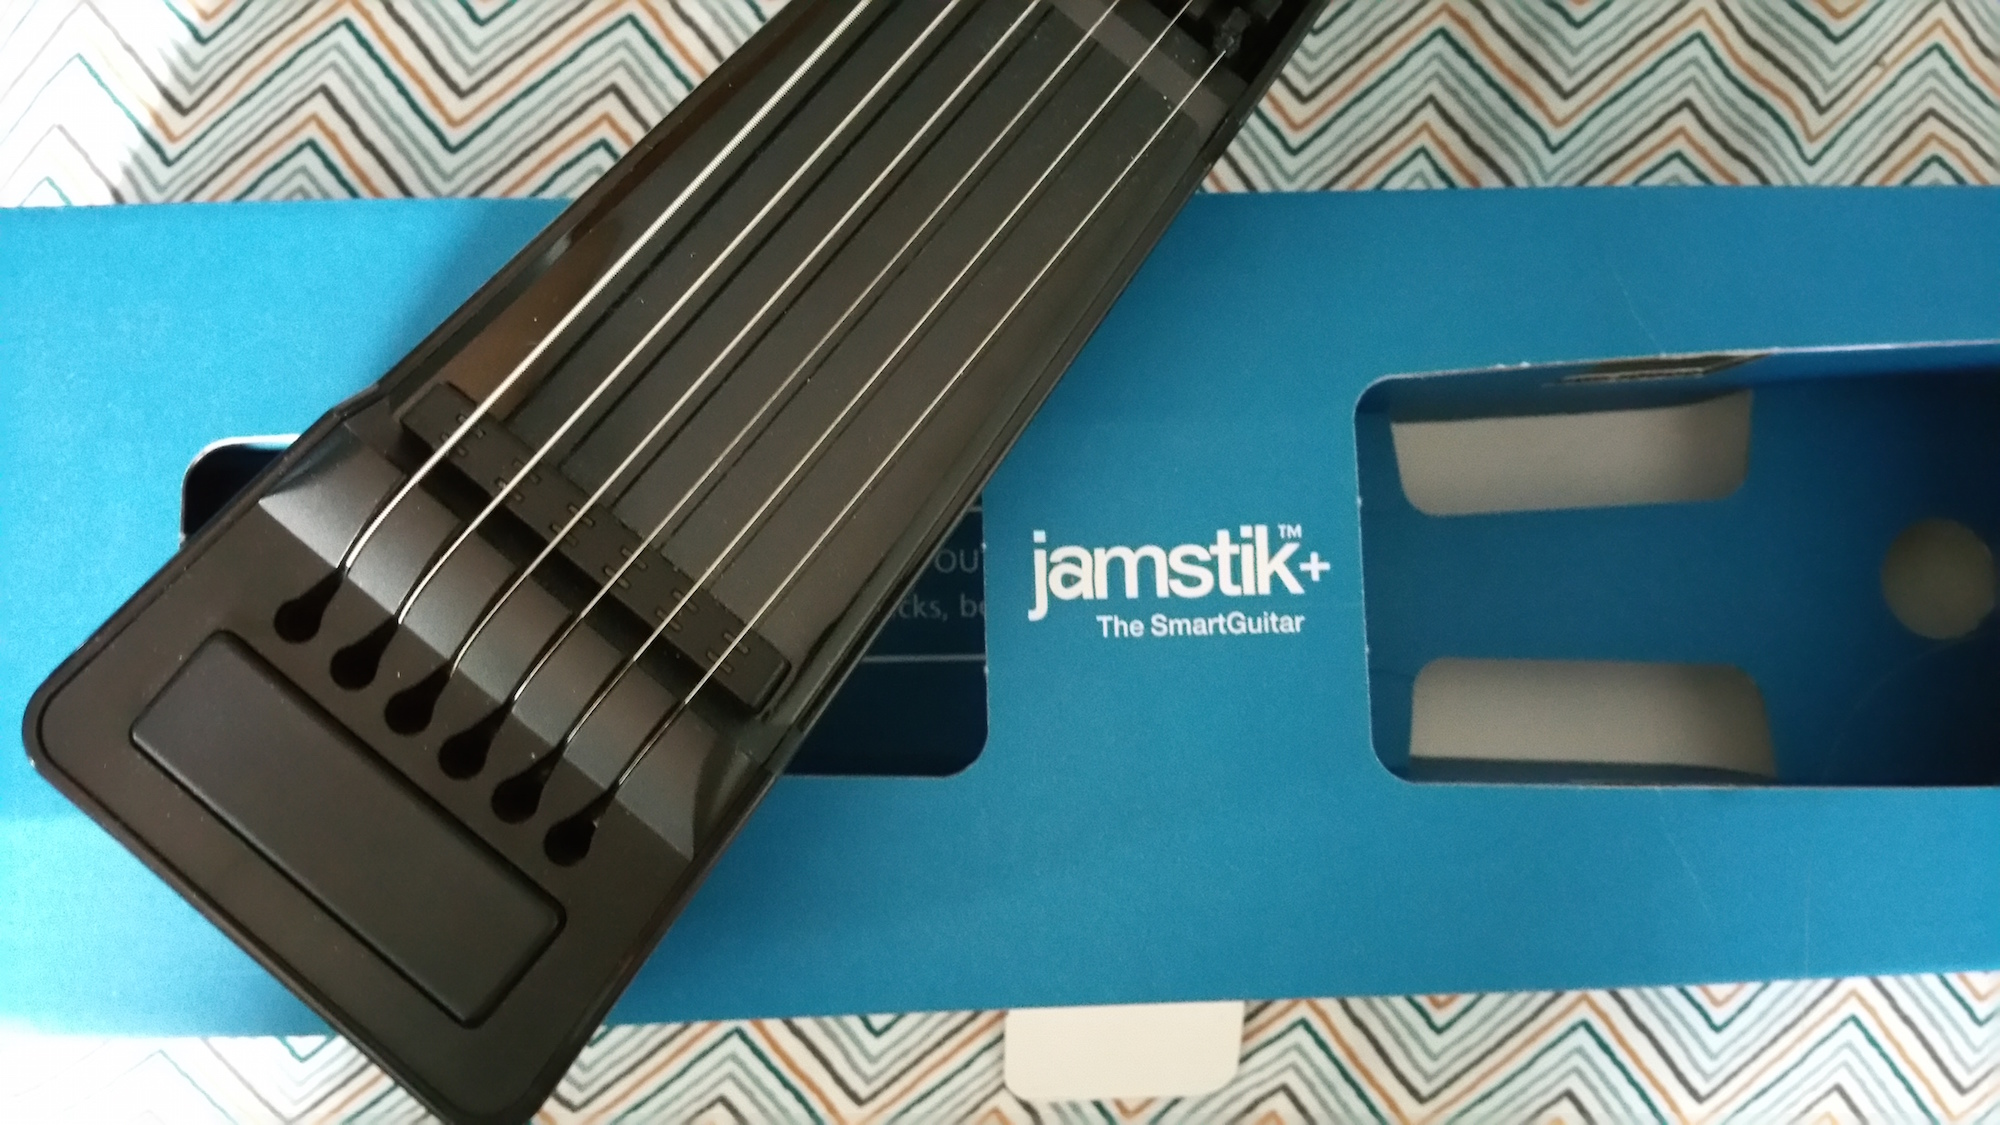 Jamstik+ review: Not quite a guitar replacement, but a great tool for beginners